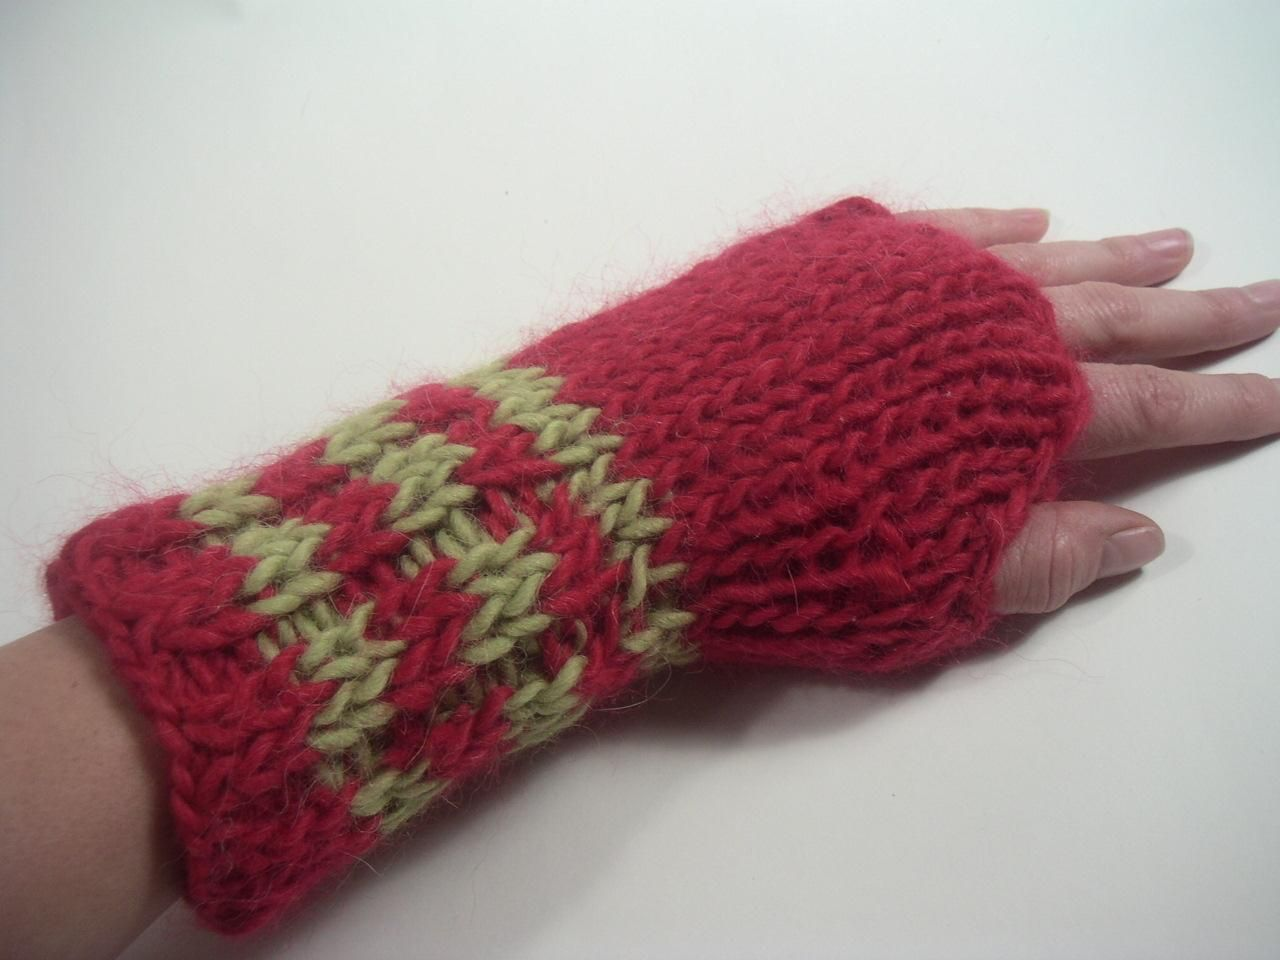 Authentic Knitting board - Adjustable Knitting Boards, patterns ...